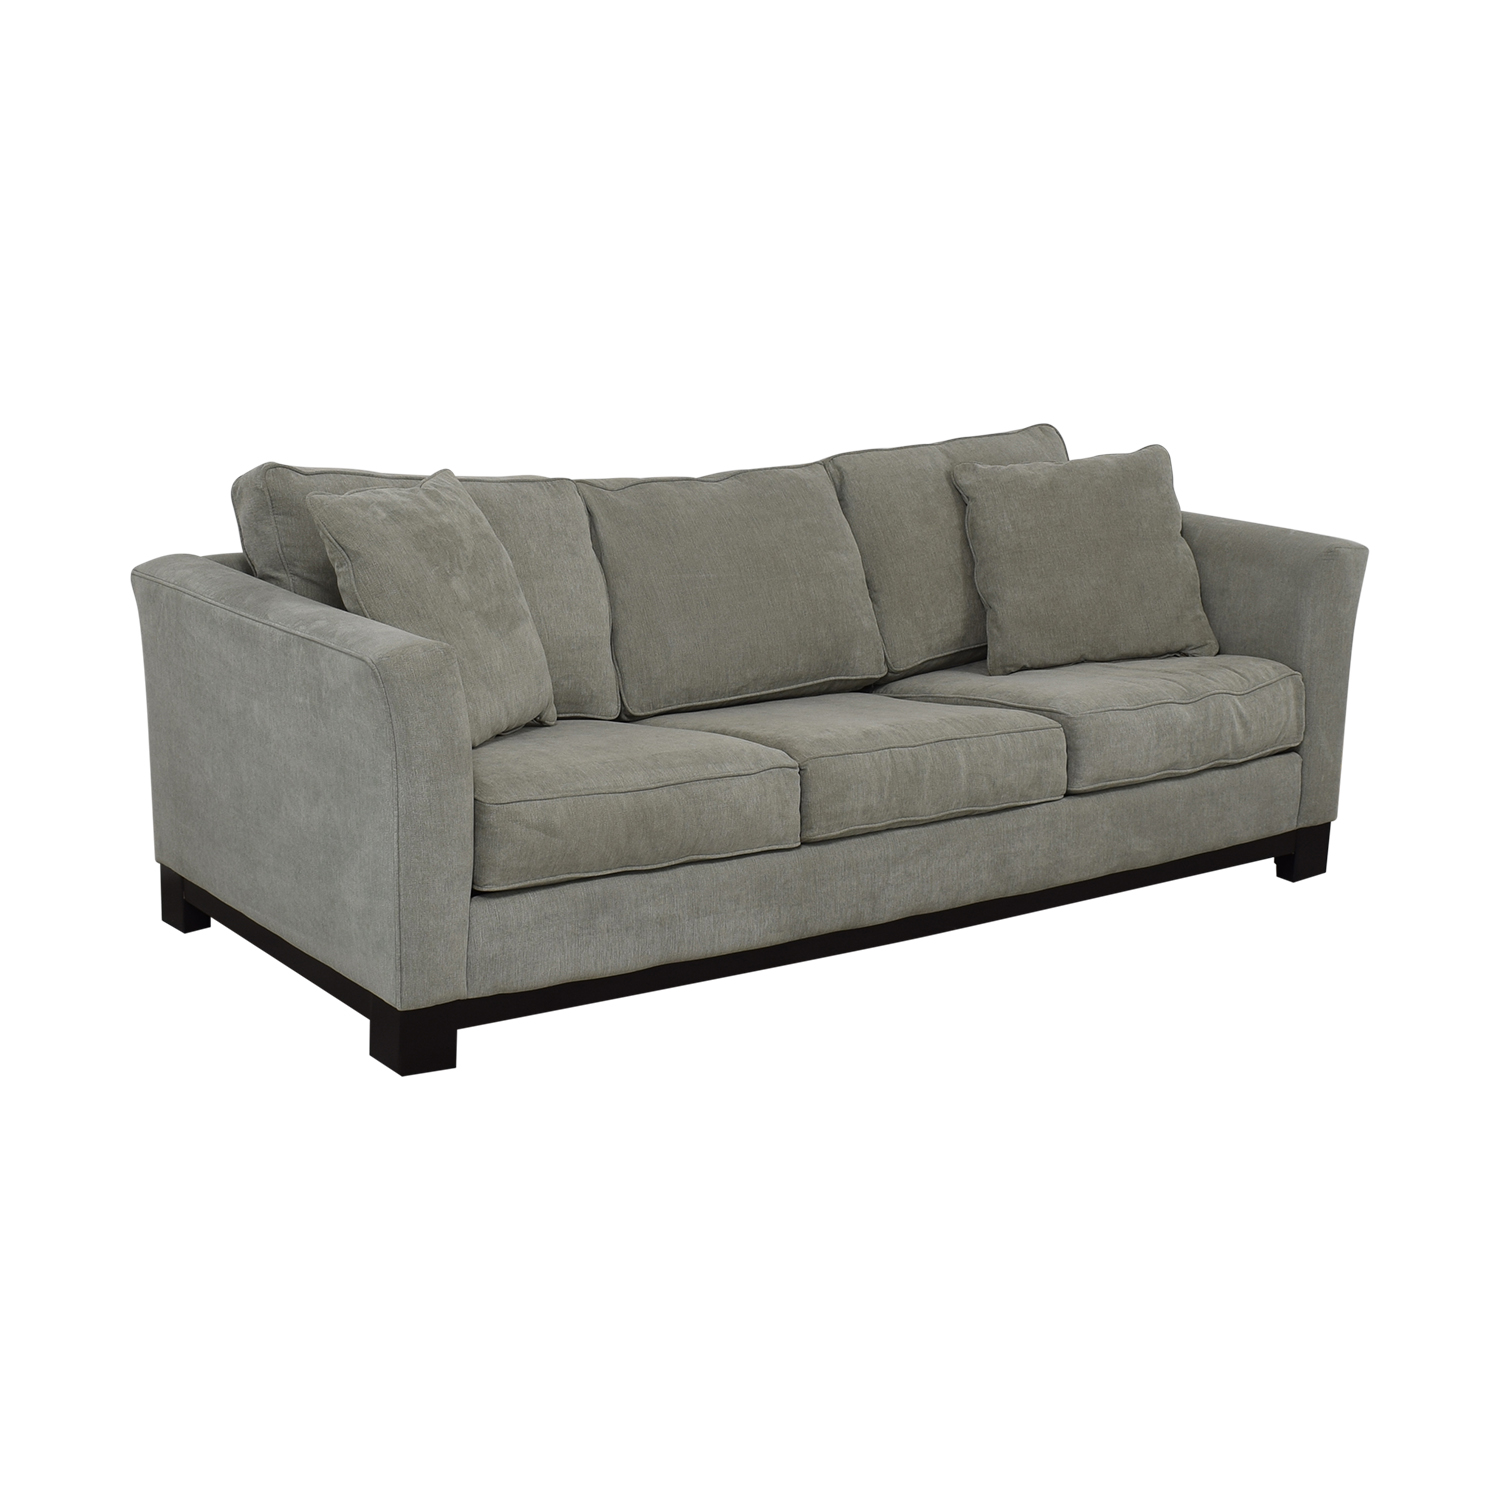 Macy's Macy's Queen Sleeper Sofa for sale